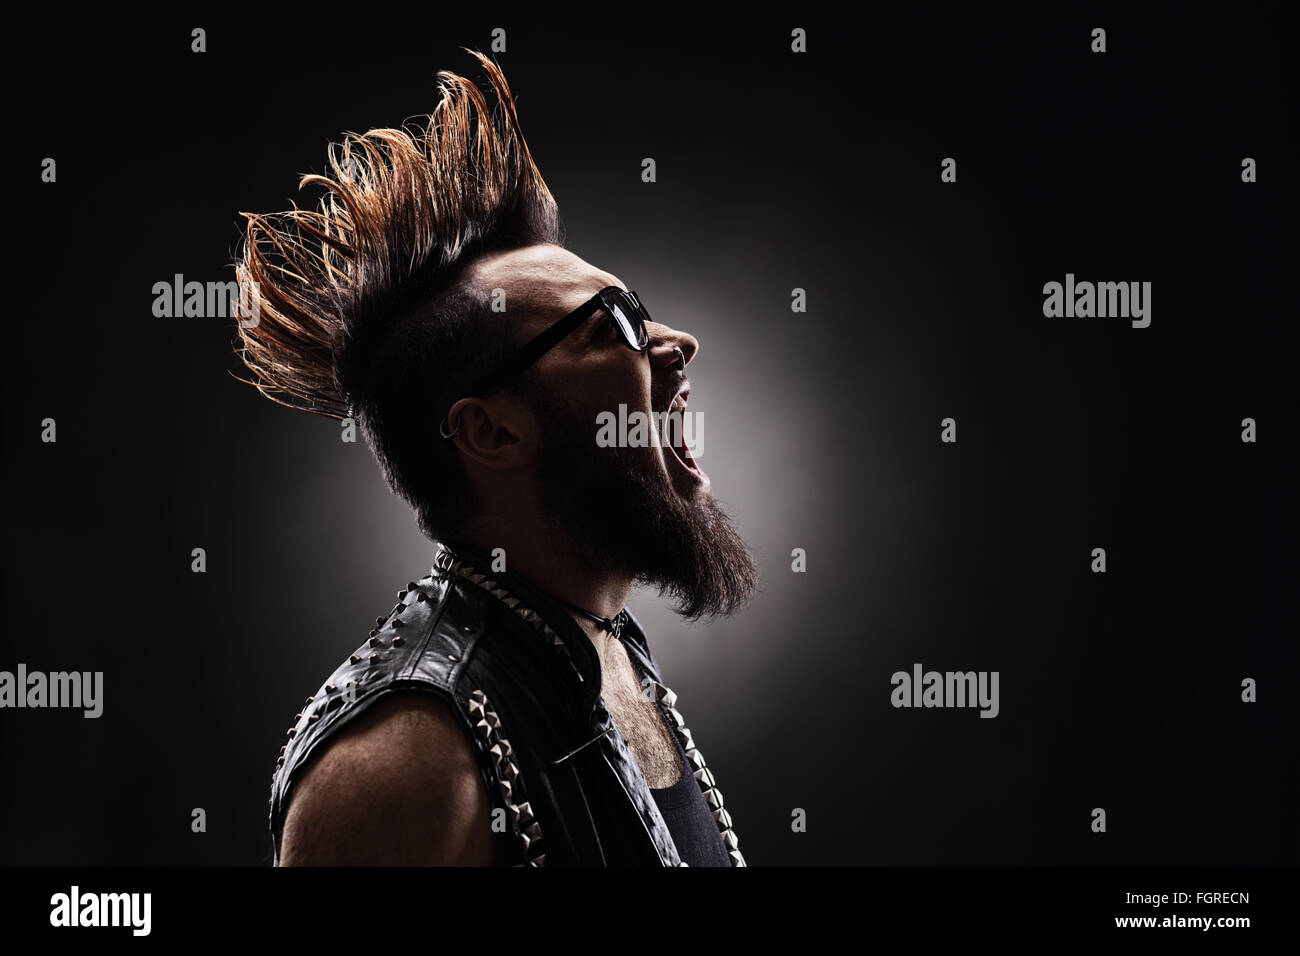 Profile shot of an angry punk rocker shouting on dark background - Stock Image